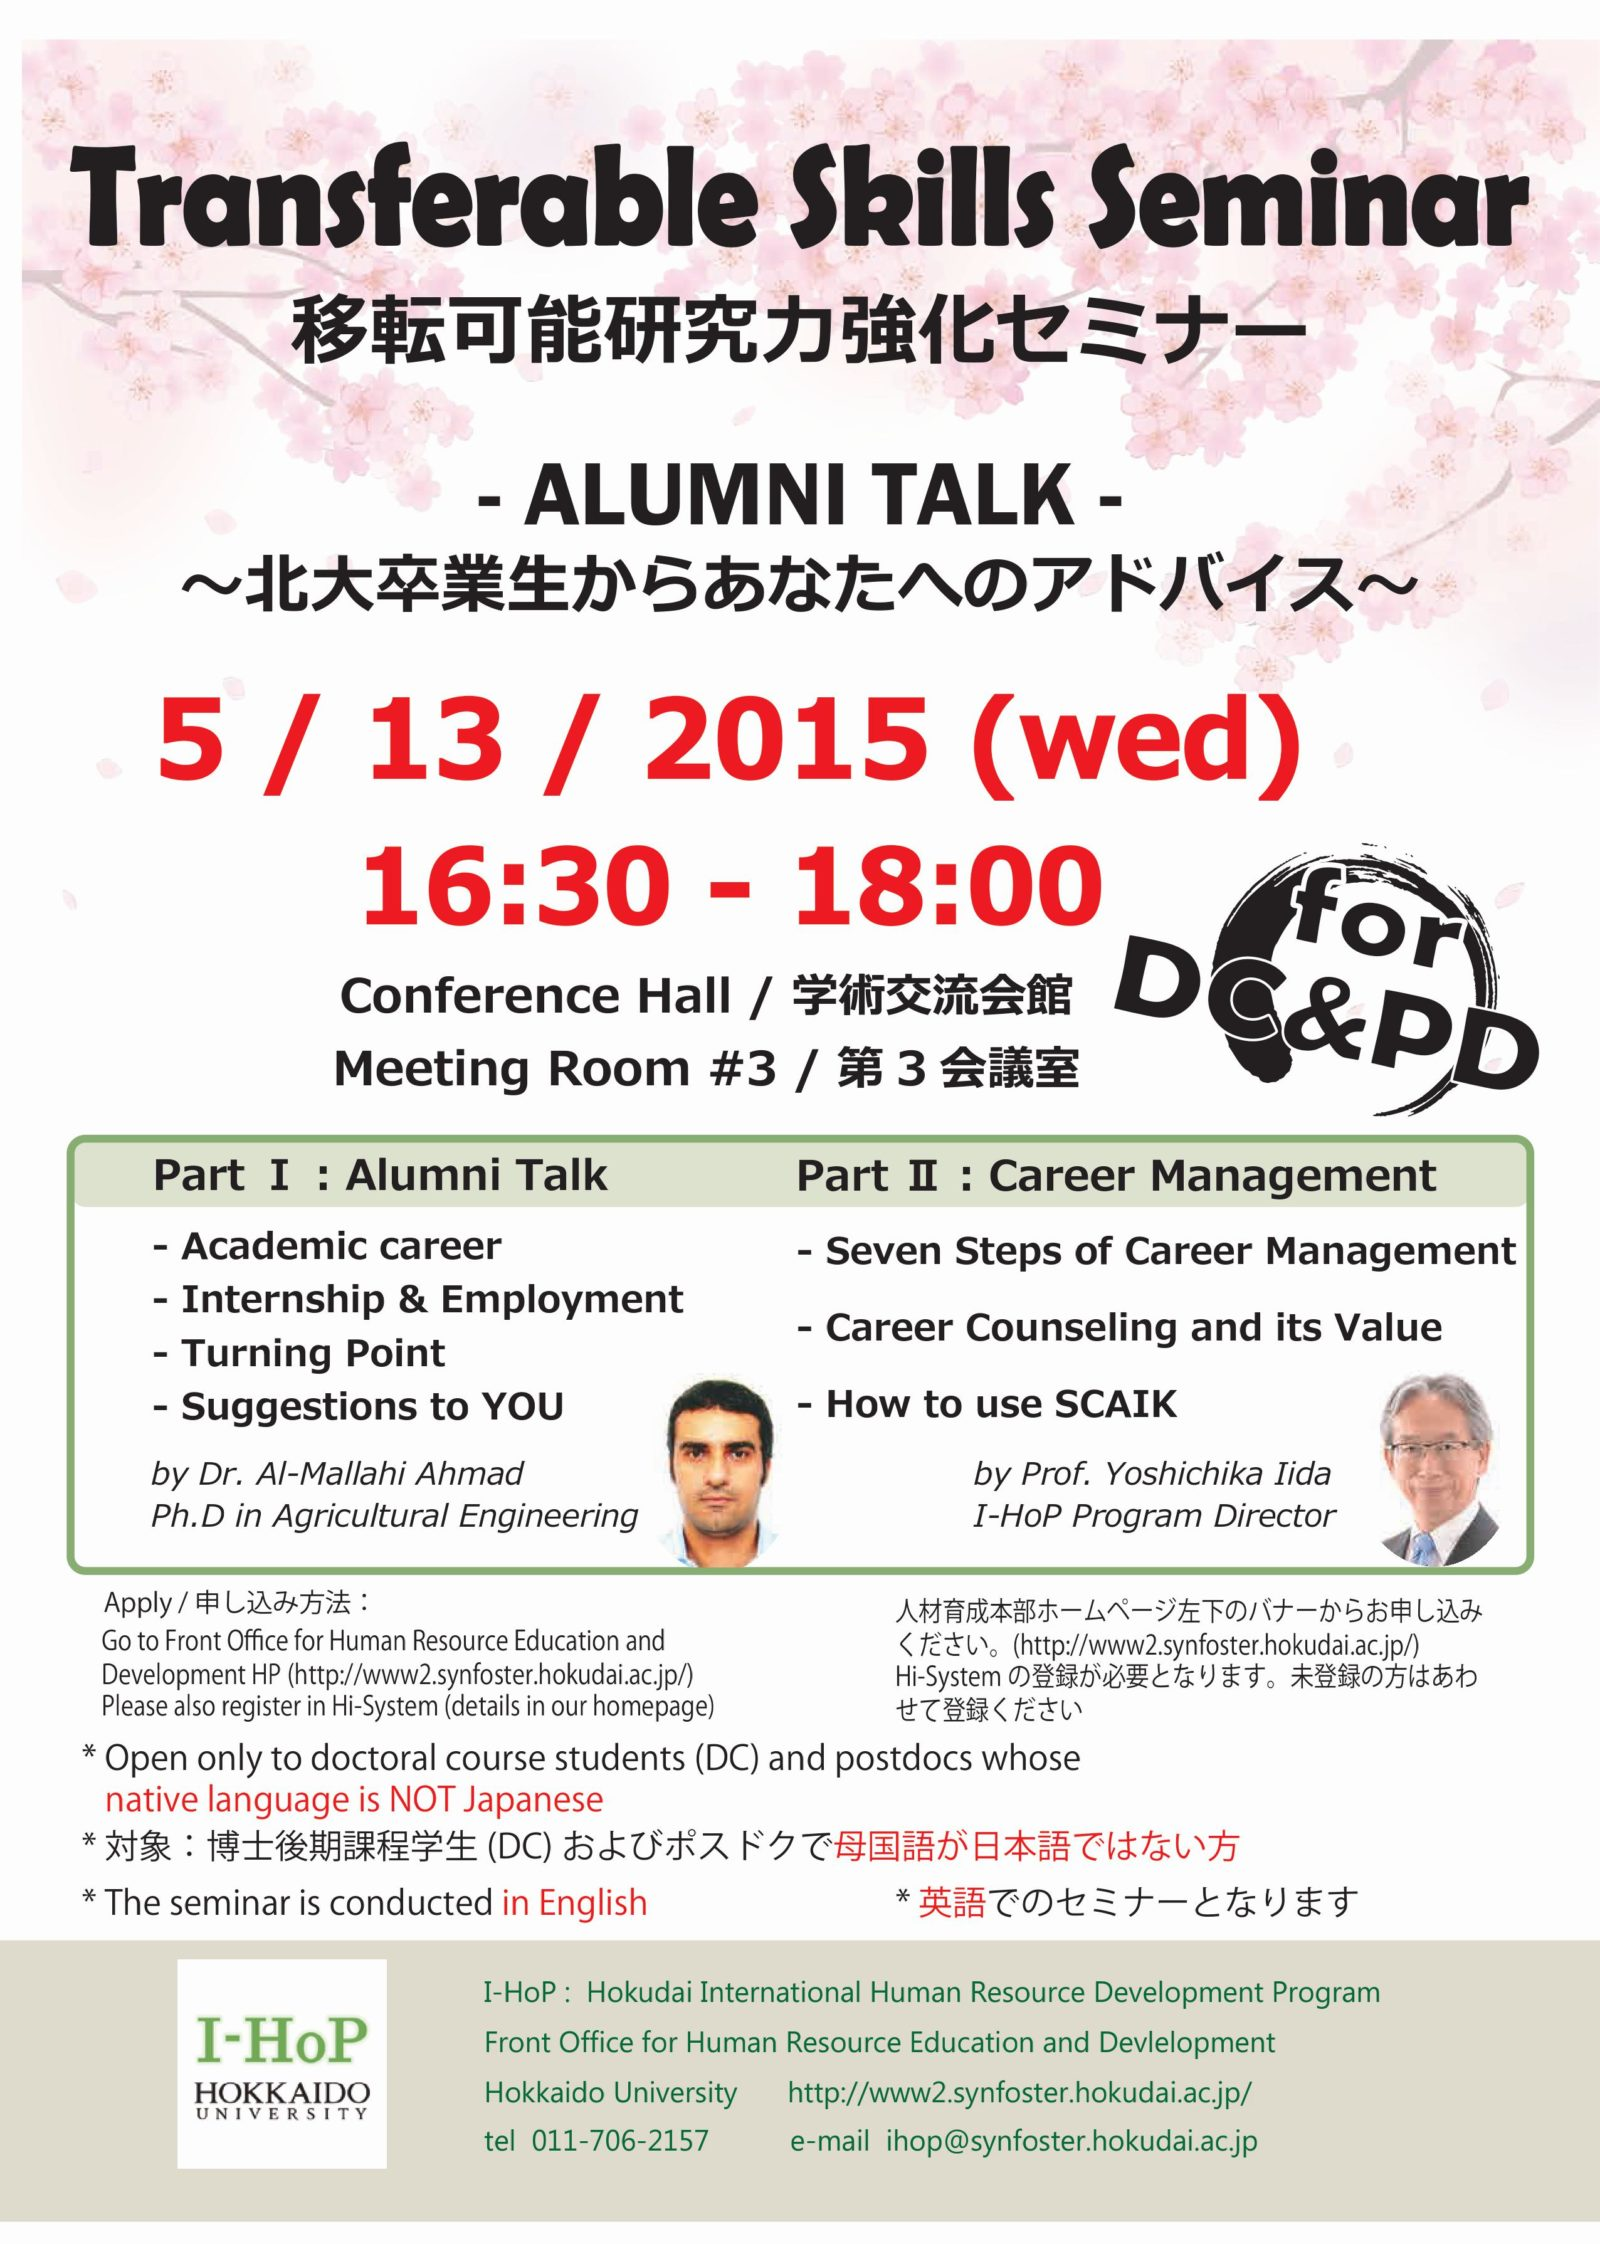 international human resource development program i hop transferable skills seminar alumni talk